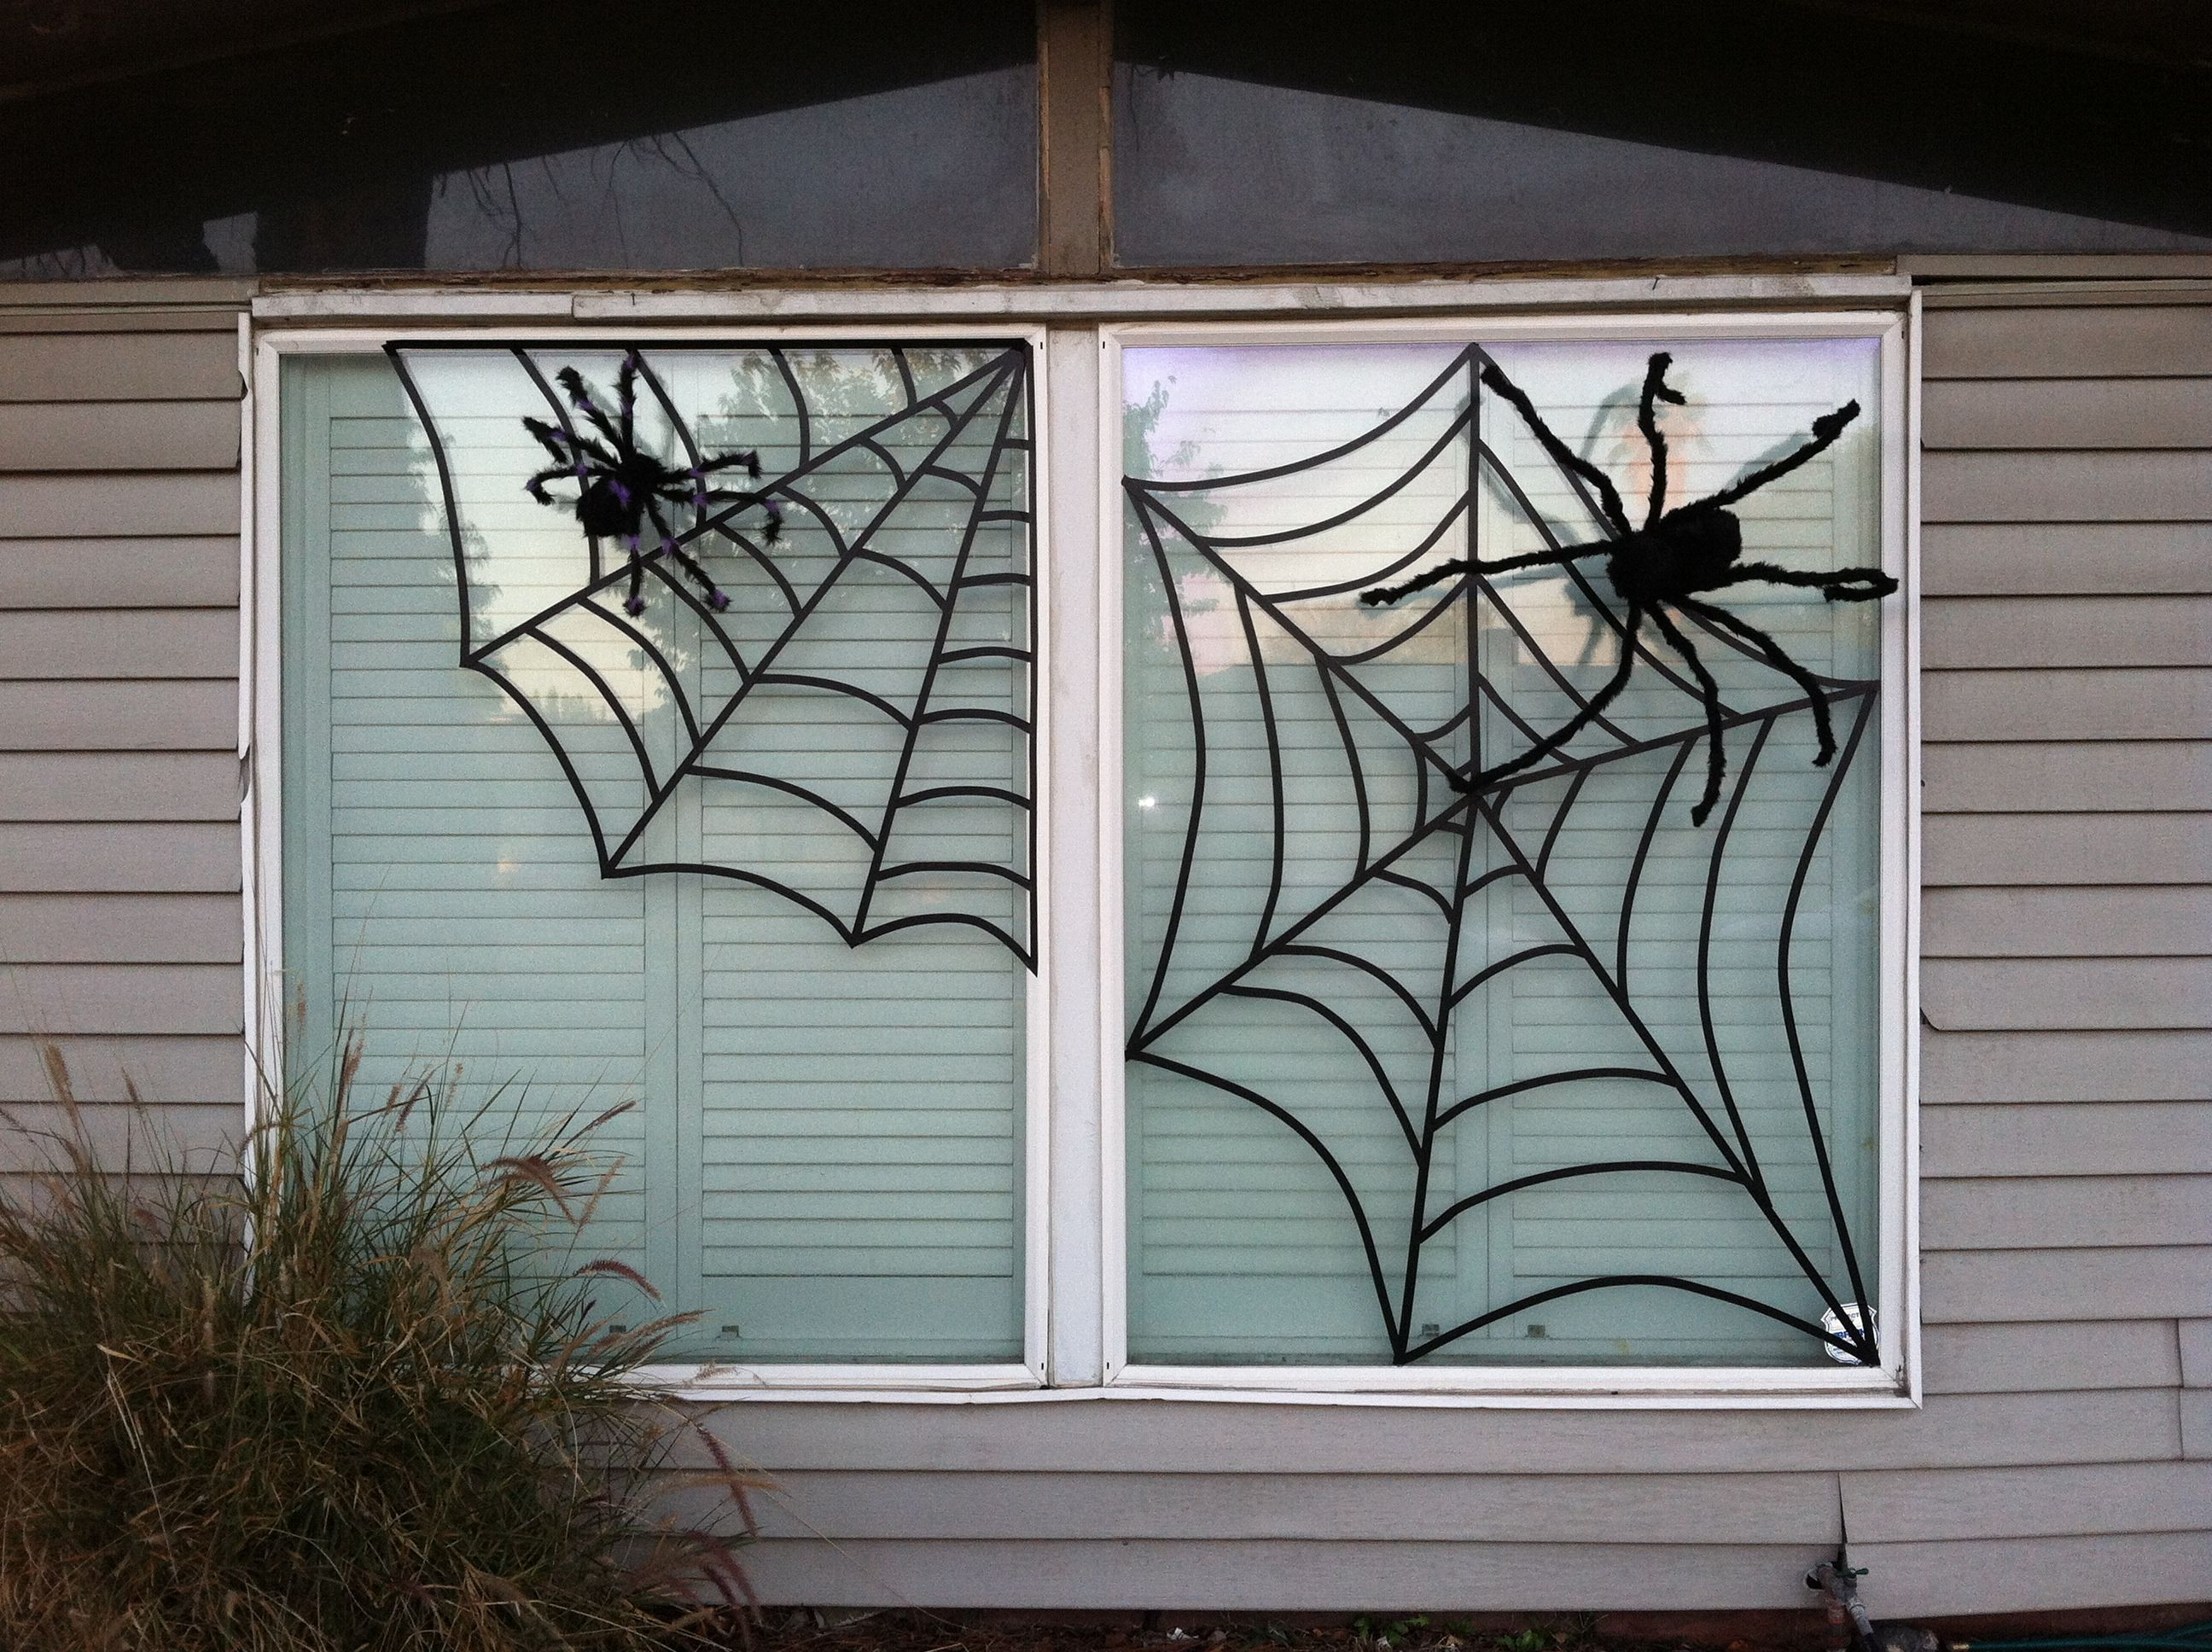 Electrical Tape Spider Webs The Tape Stretches So You Can Make The Arches For The Web Halloween Window Halloween Crafts Decorations Halloween Porch